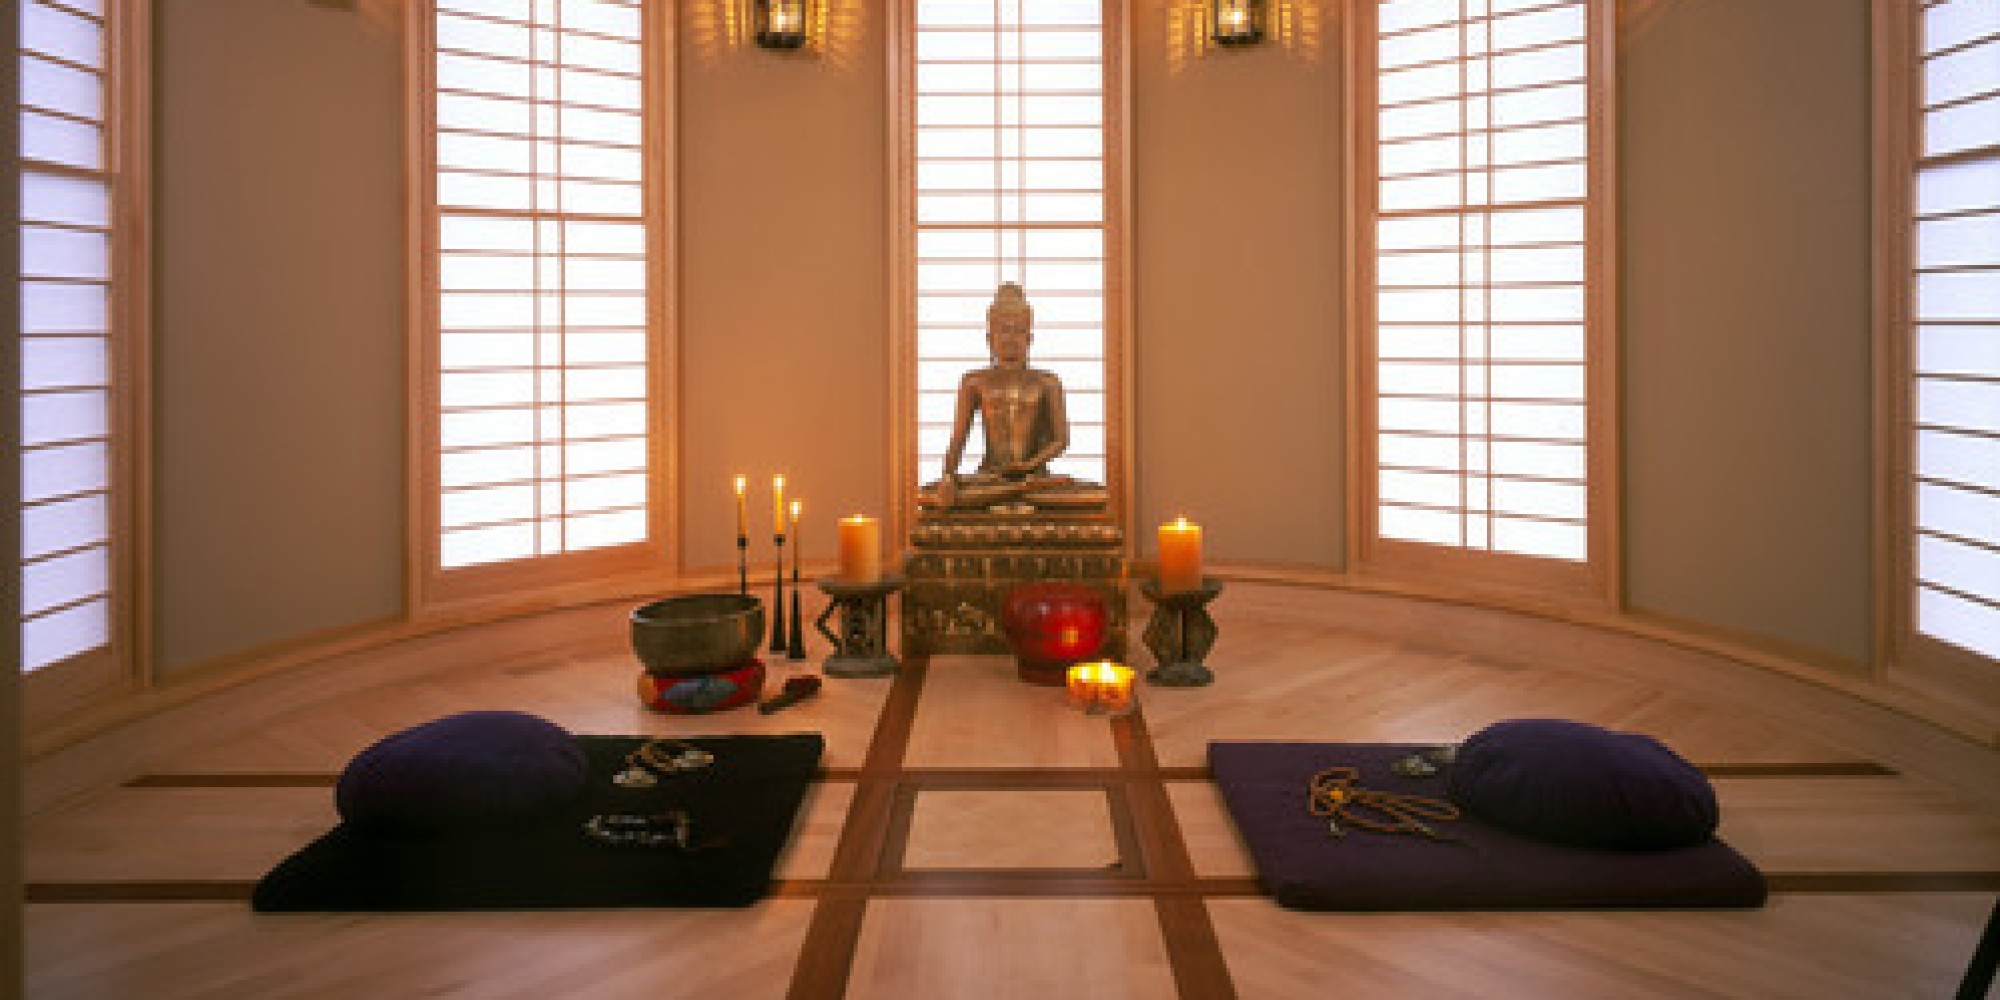 Meditation Decor Captivating How To Create A Meditation Room  Kheops International Review